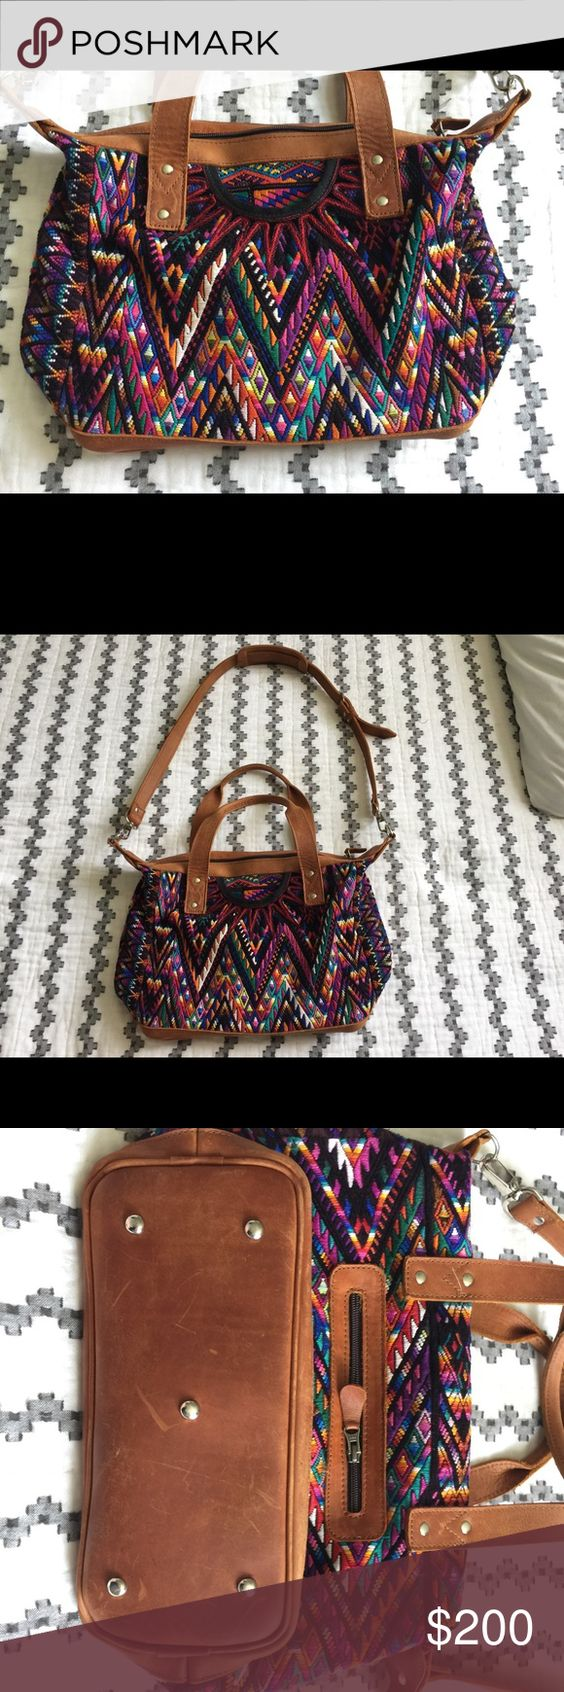 Nena and Co Sonia Gently used Sonia from Nena and Co. I purchased this bag in February and used it for about a month. The leather has normal scratches and the huipil has some pulls which are normal ( see photos for details). The handle does have a few los